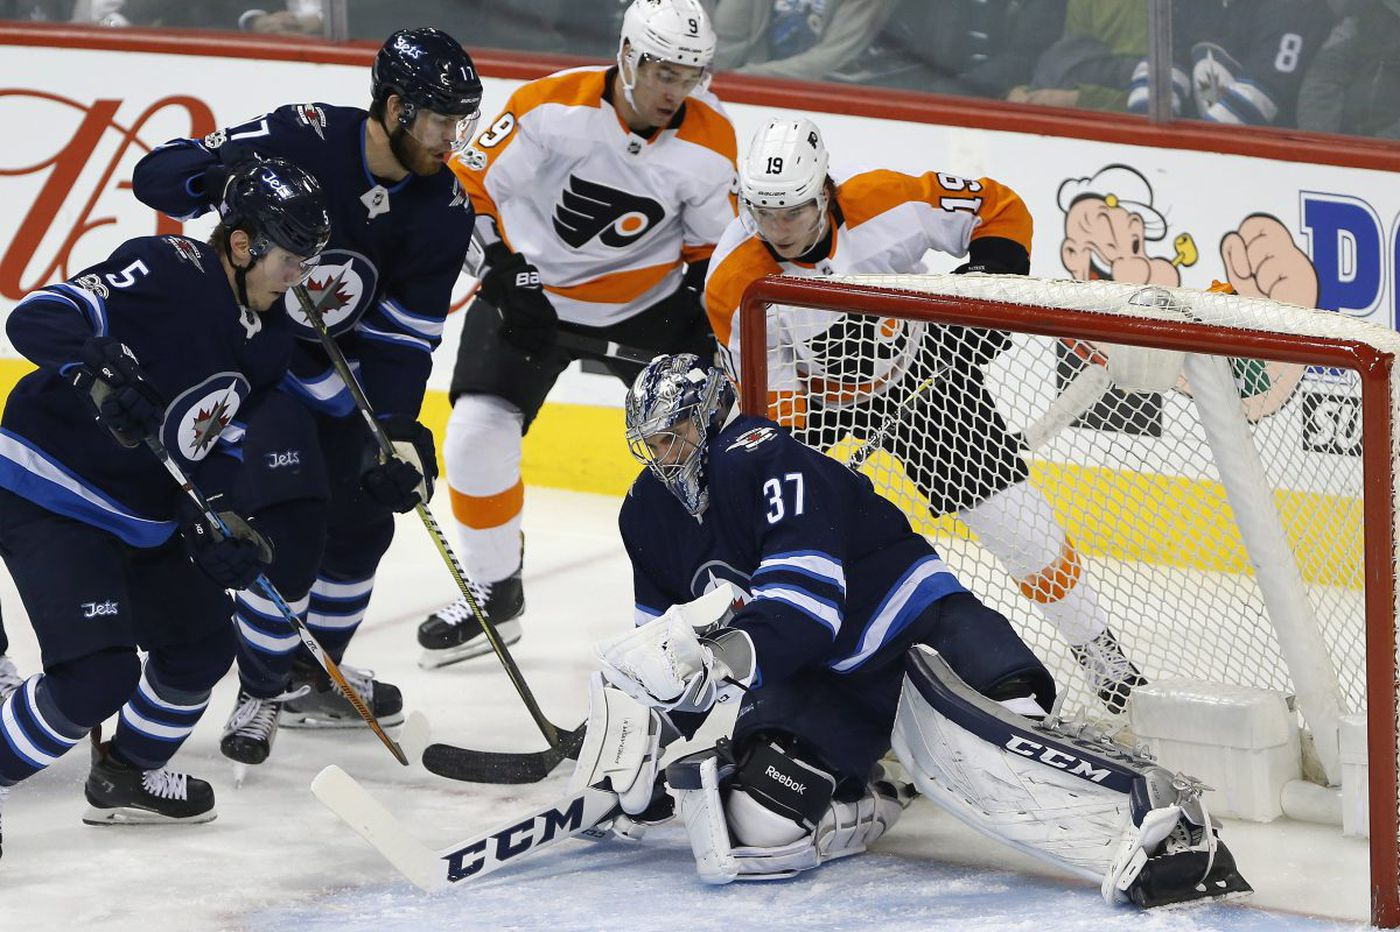 Jets 3, Flyers 2: Observations from Philly's shootout loss